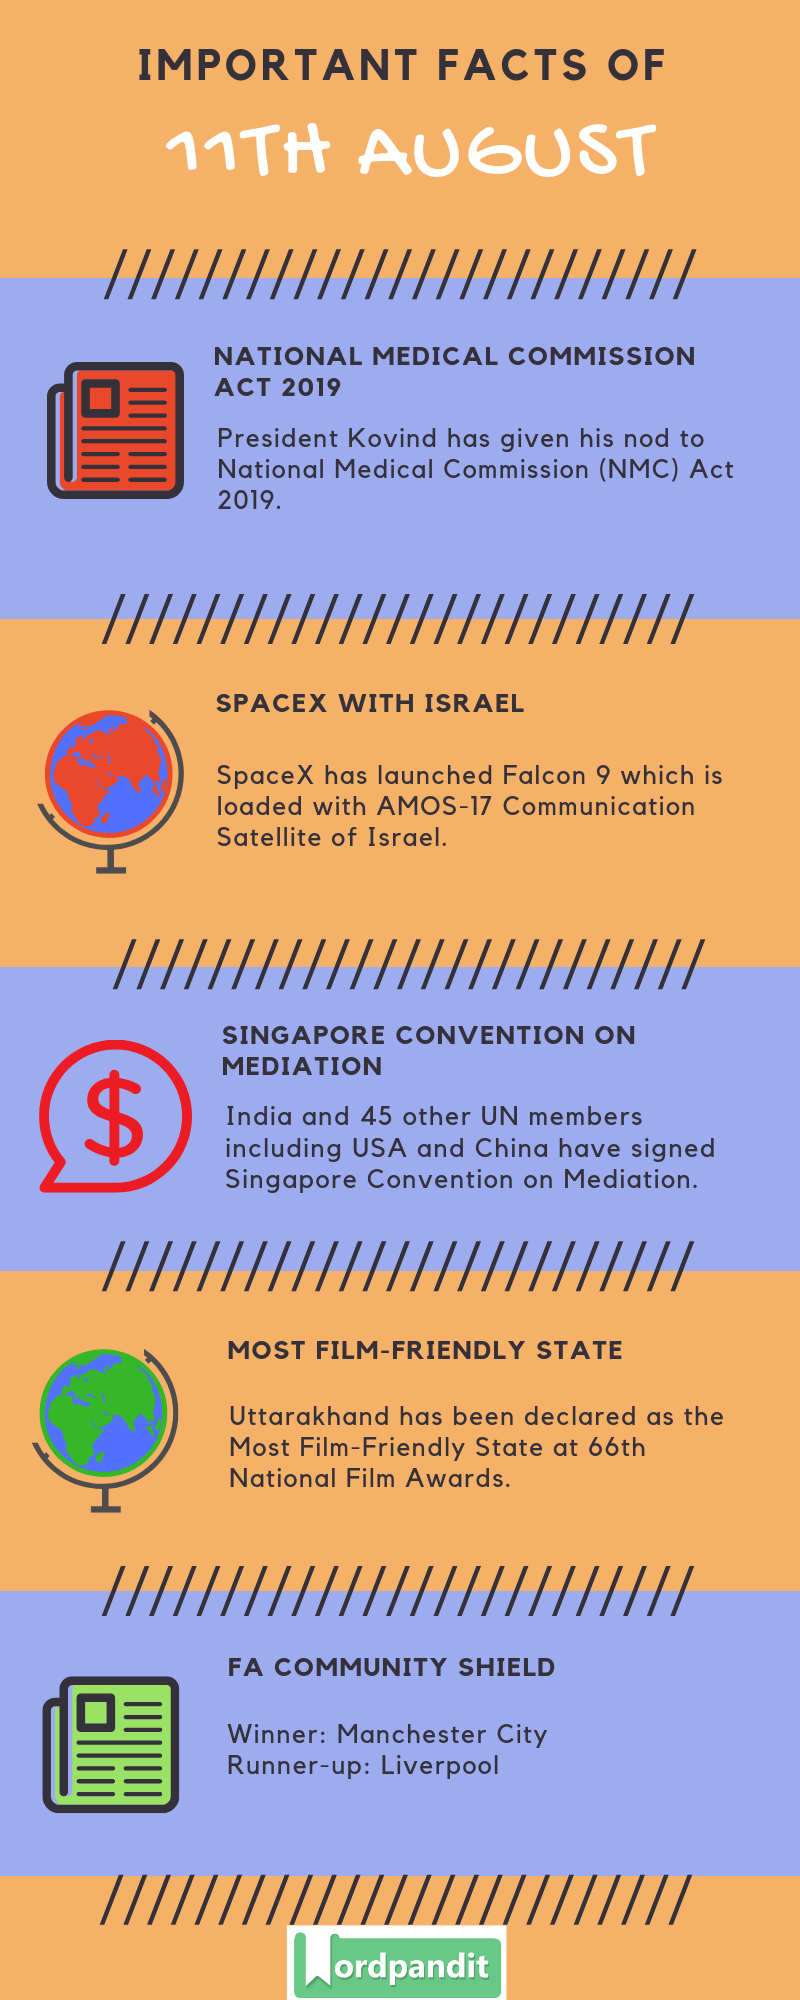 Daily Current Affairs 11 August 2019 Current Affairs Quiz 11 August 2019 Current Affairs Infographic